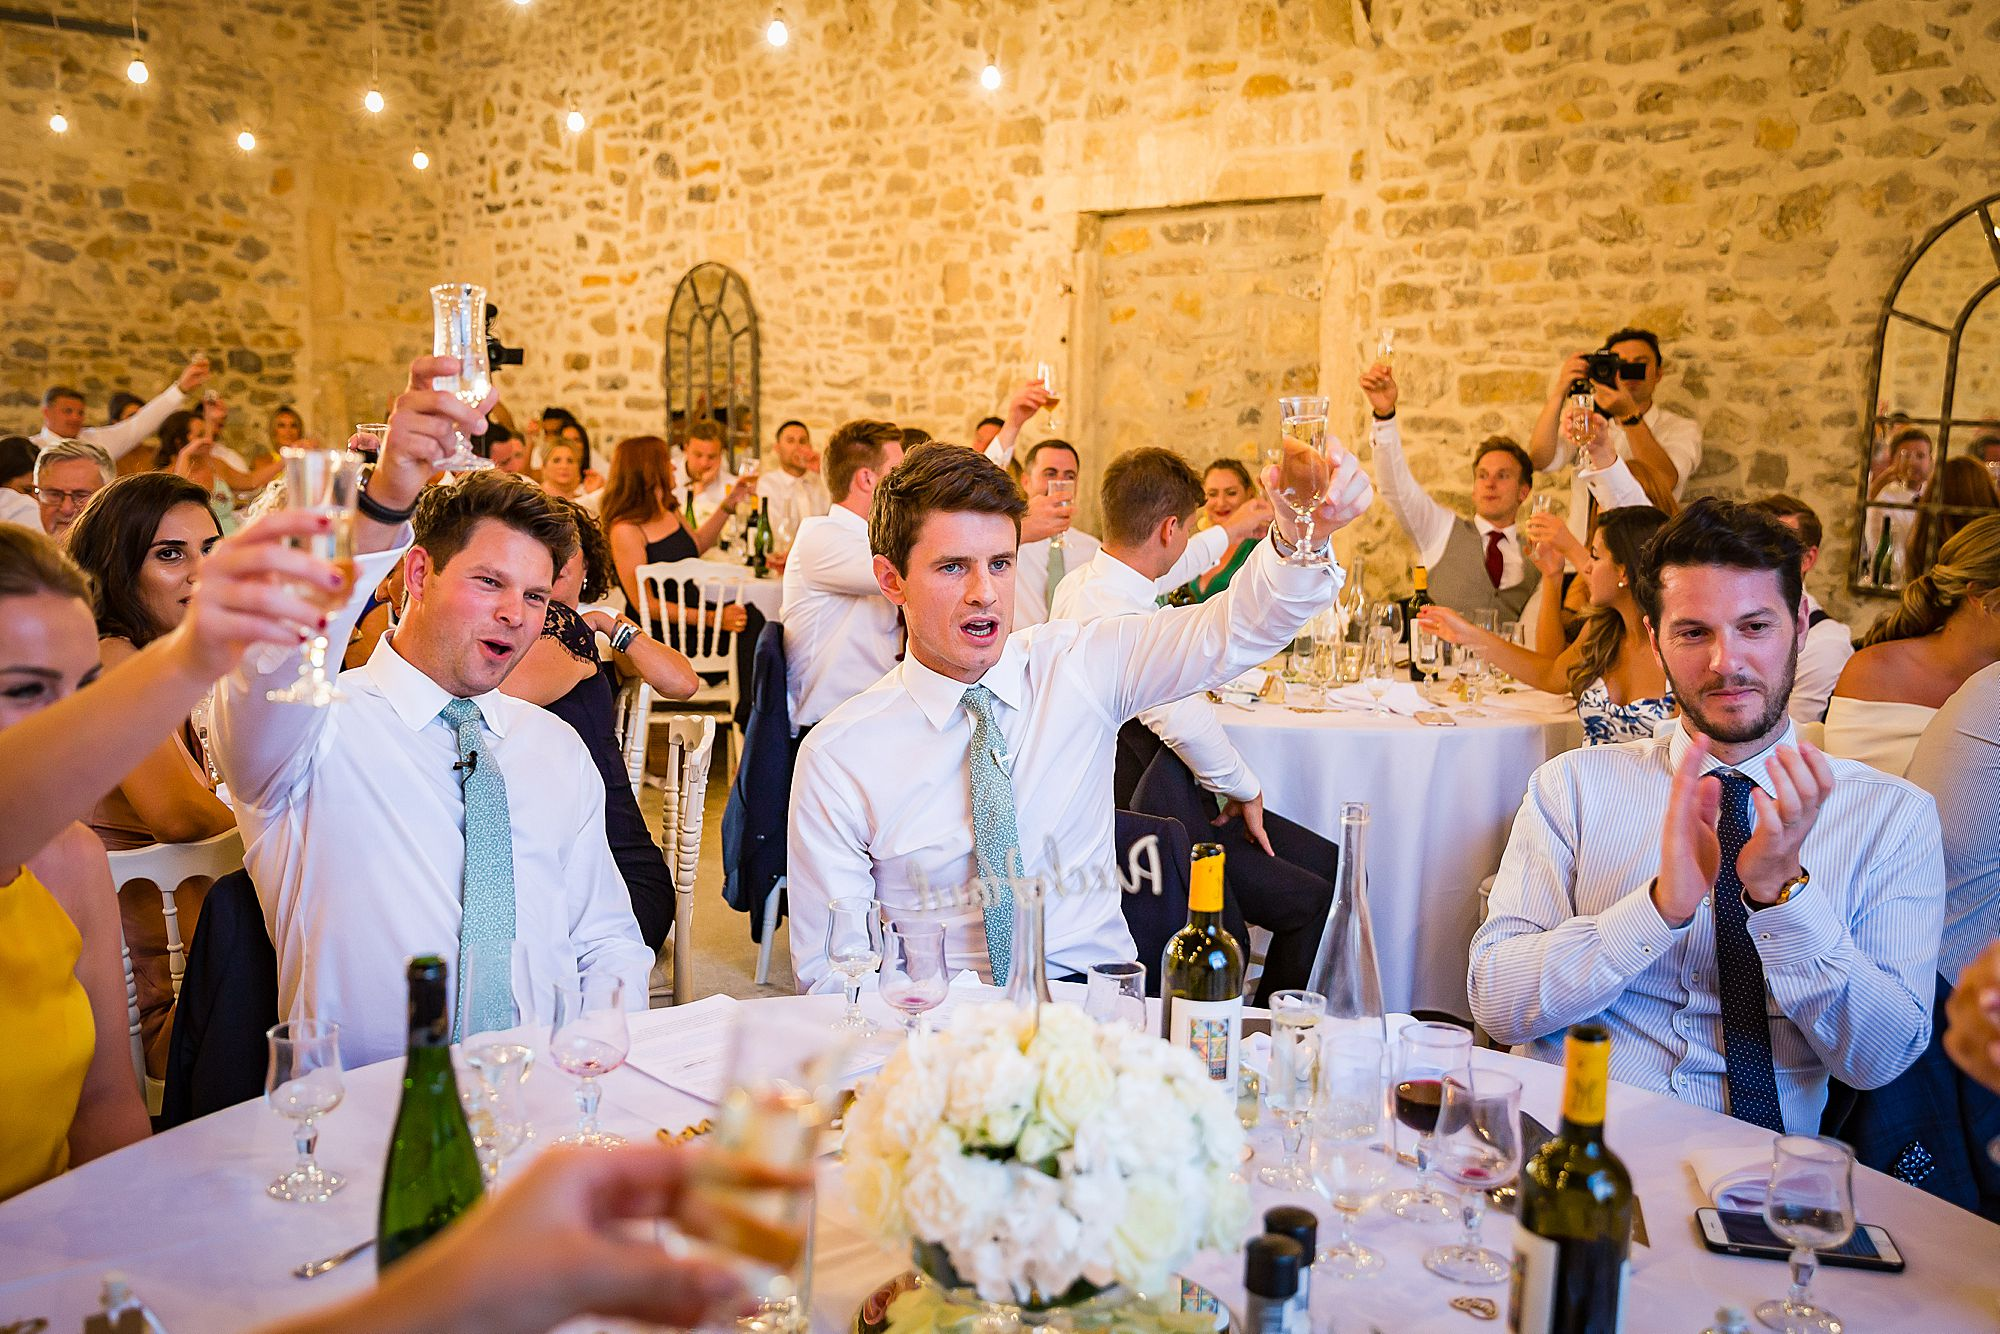 guests raise their glasses to the couple